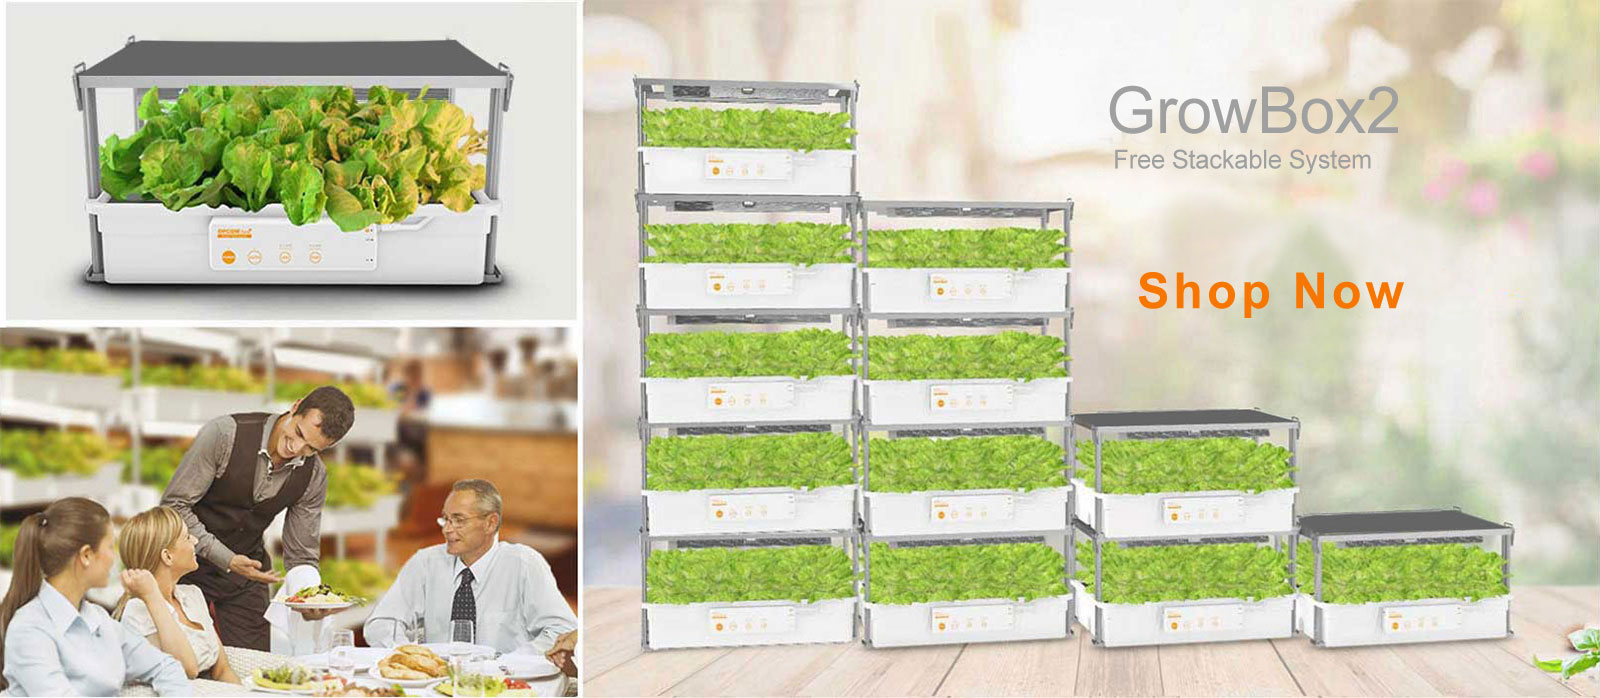 GrowBox2-Hydroponics,hydroponic grow system,Free Stackable System